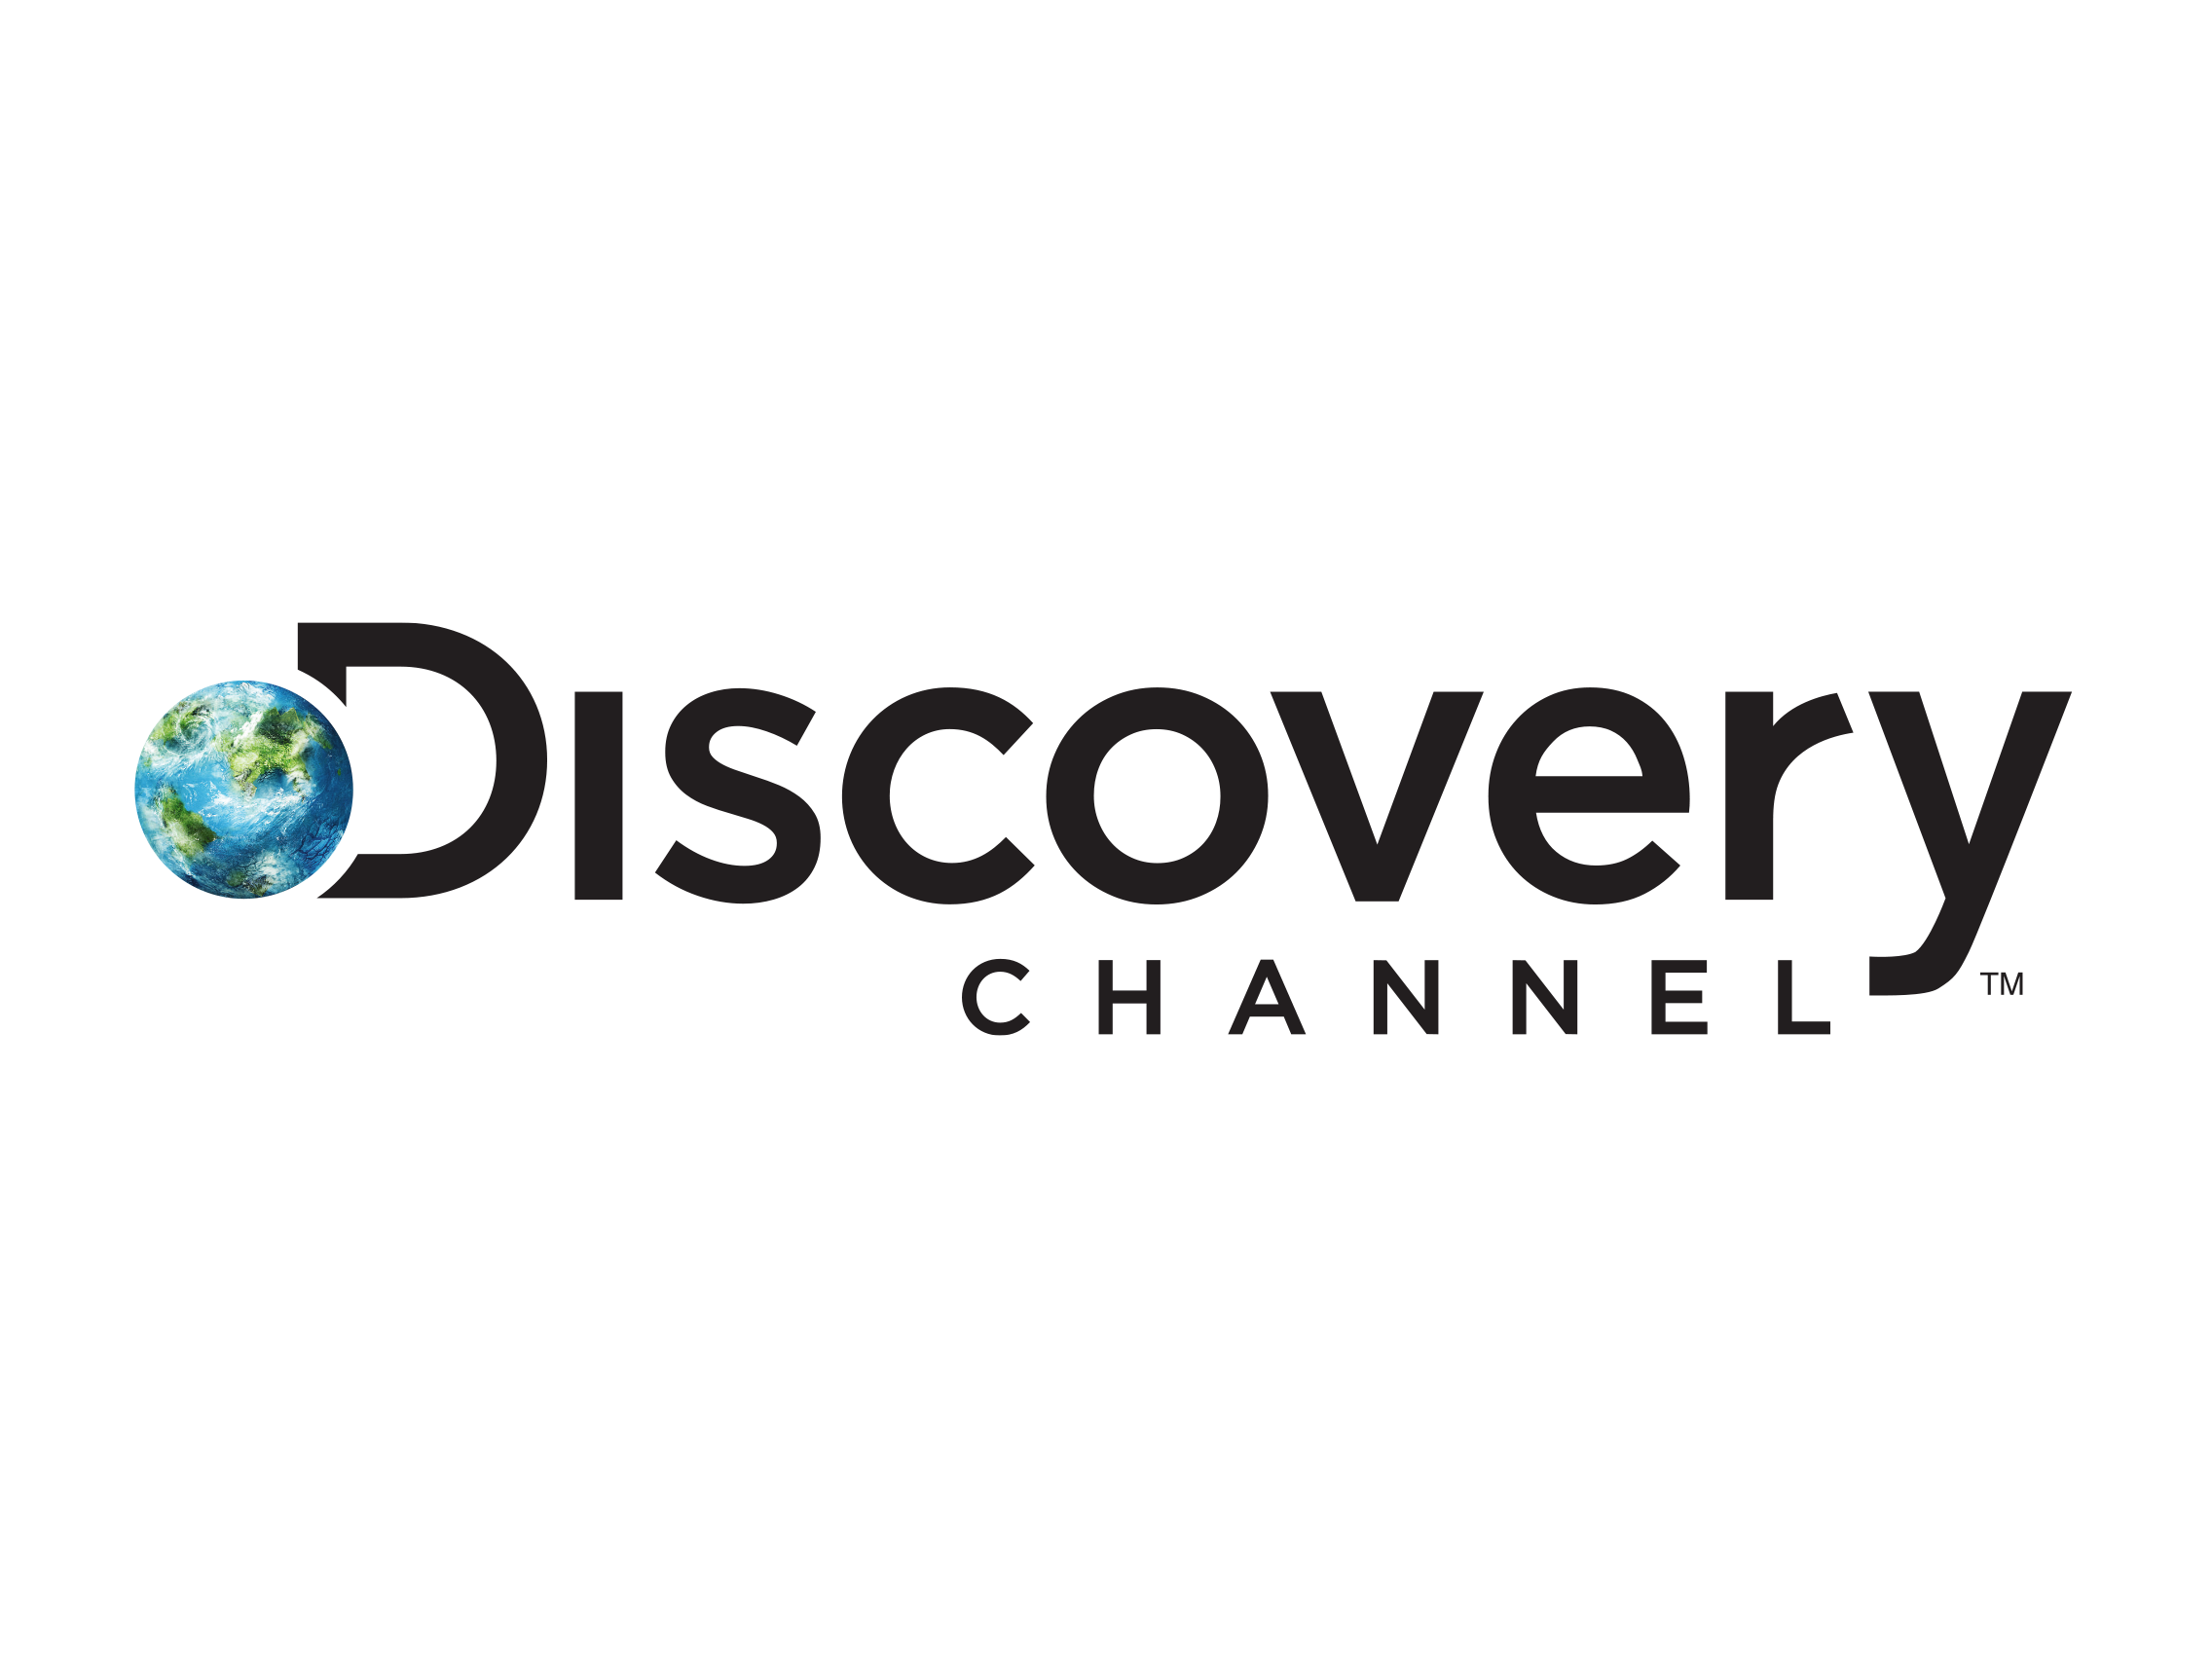 6Discovery-Channel-1